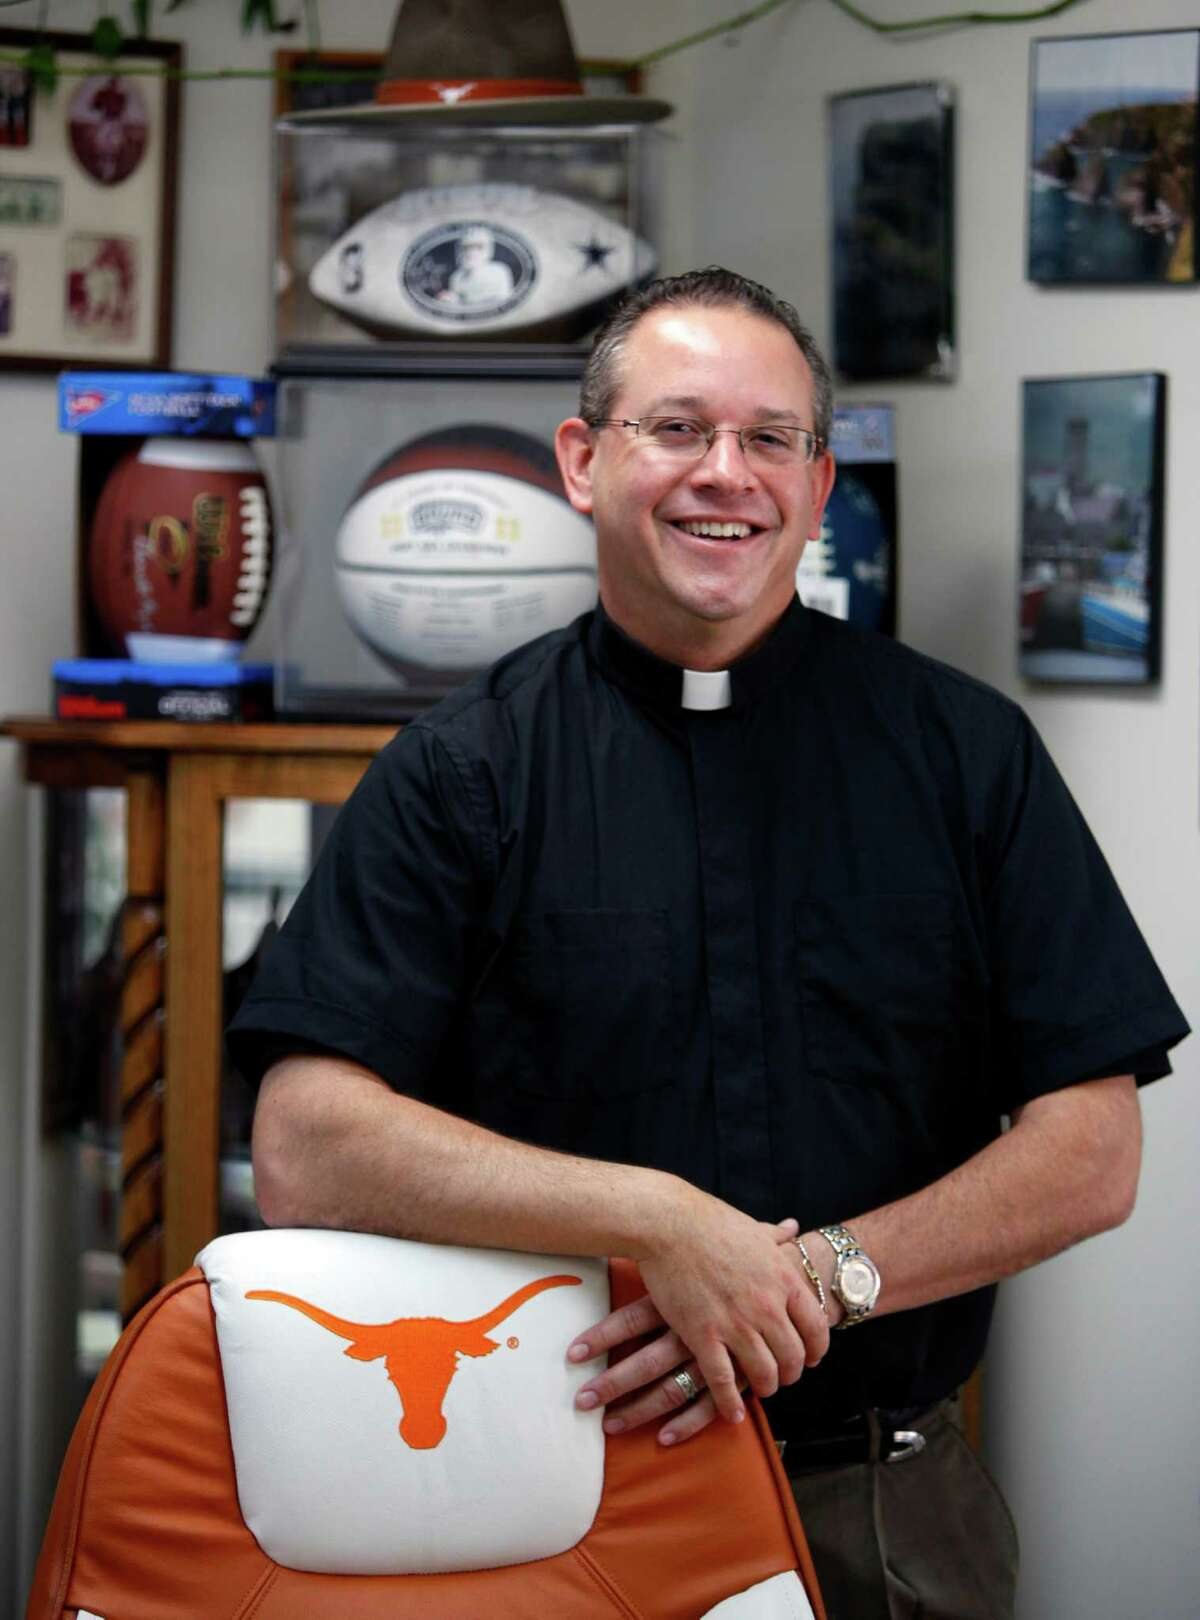 Father Eric Ritter displays some of the sports memorabilia in his office at St. Dominic Catholic Church.